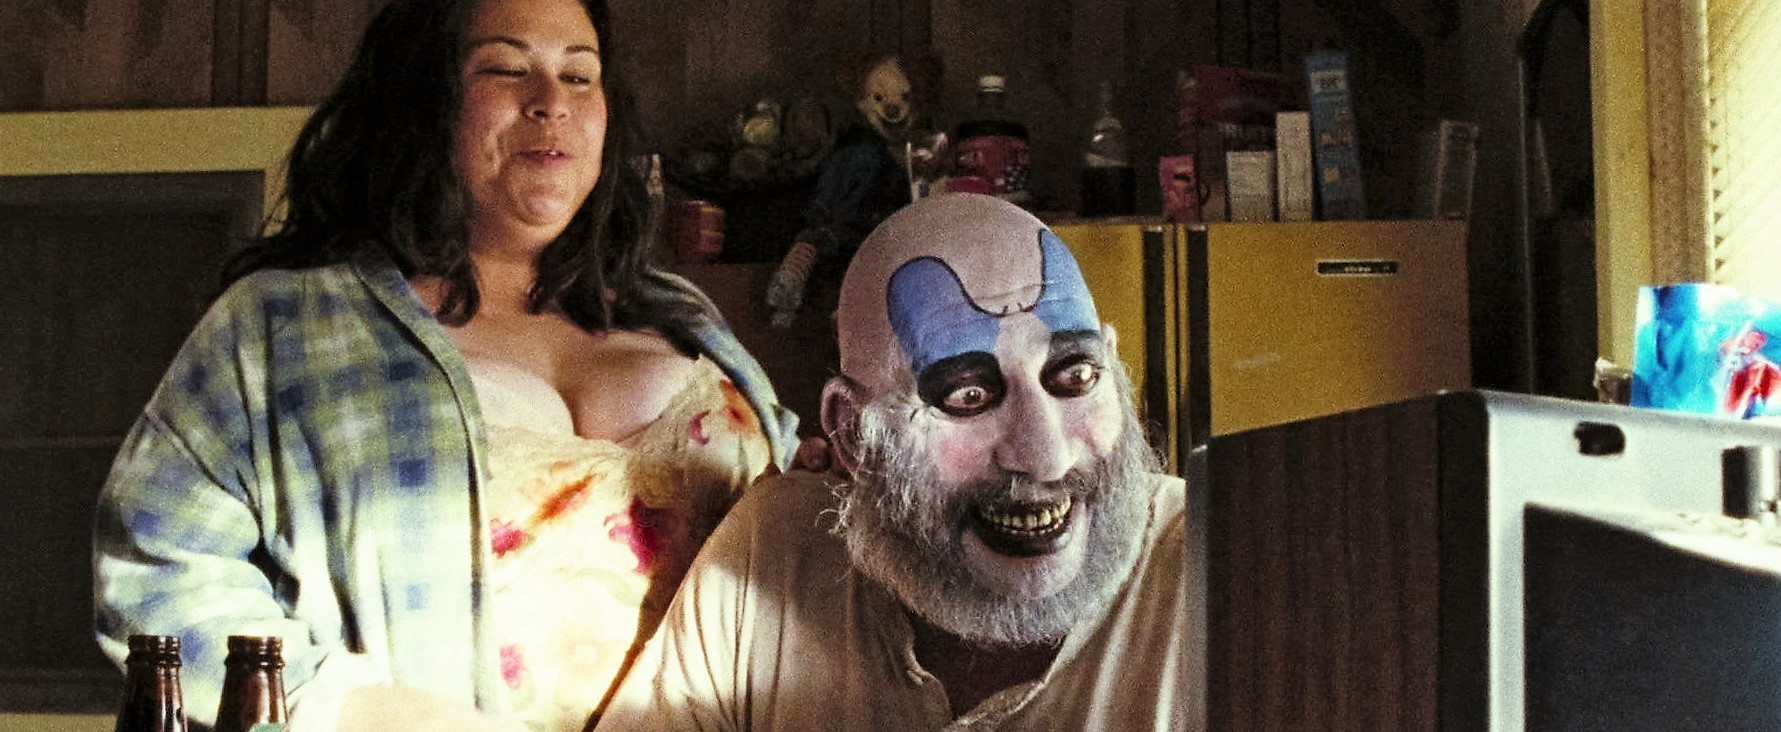 Leslie Easterbrook Devils Rejects A cleansing of the wic...